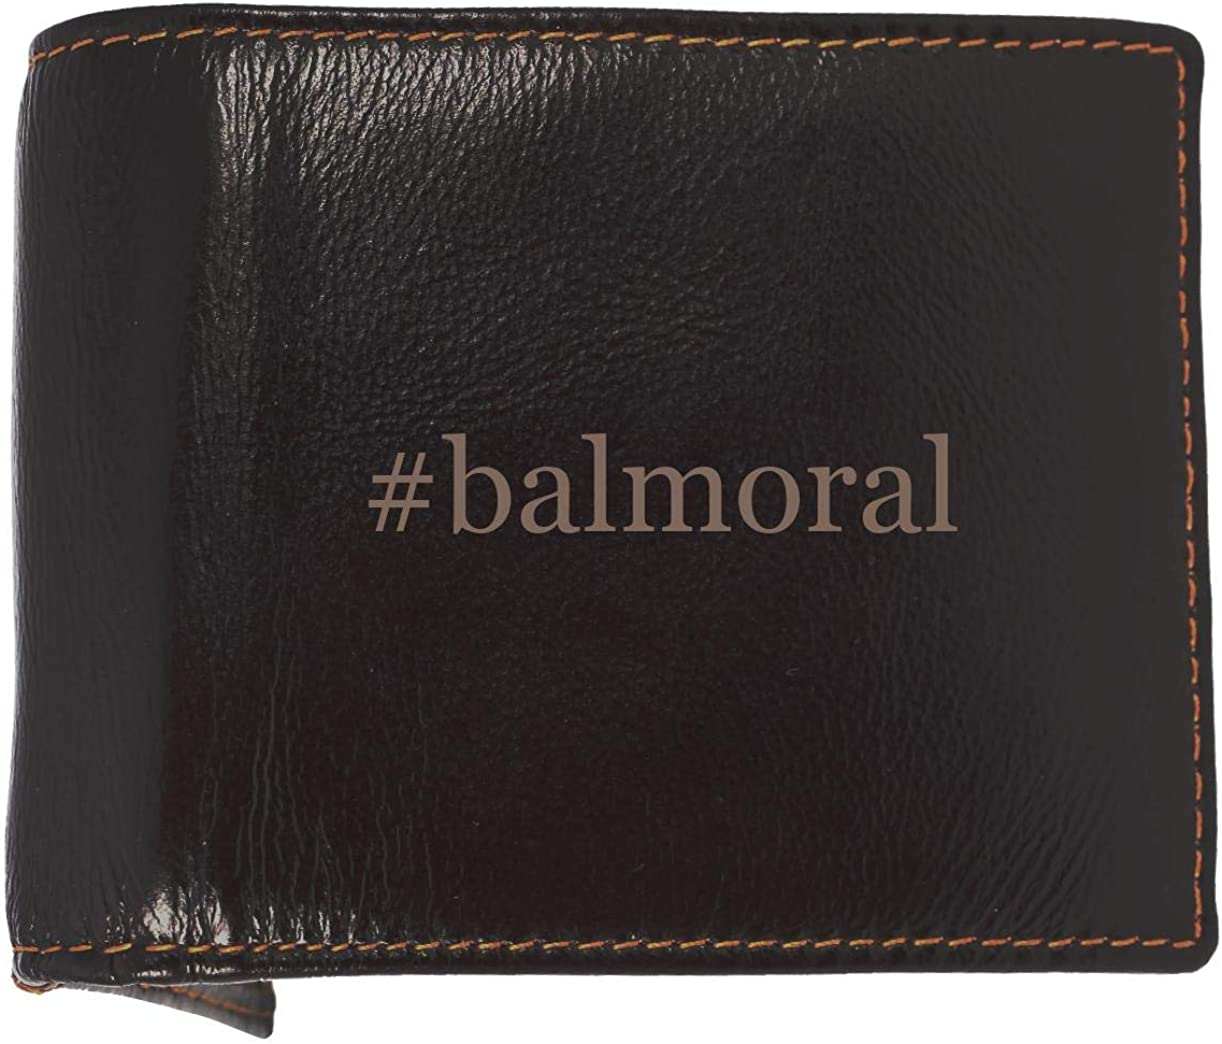 #balmoral - Soft Hashtag Cowhide Genuine Engraved Bifold Leather Wallet